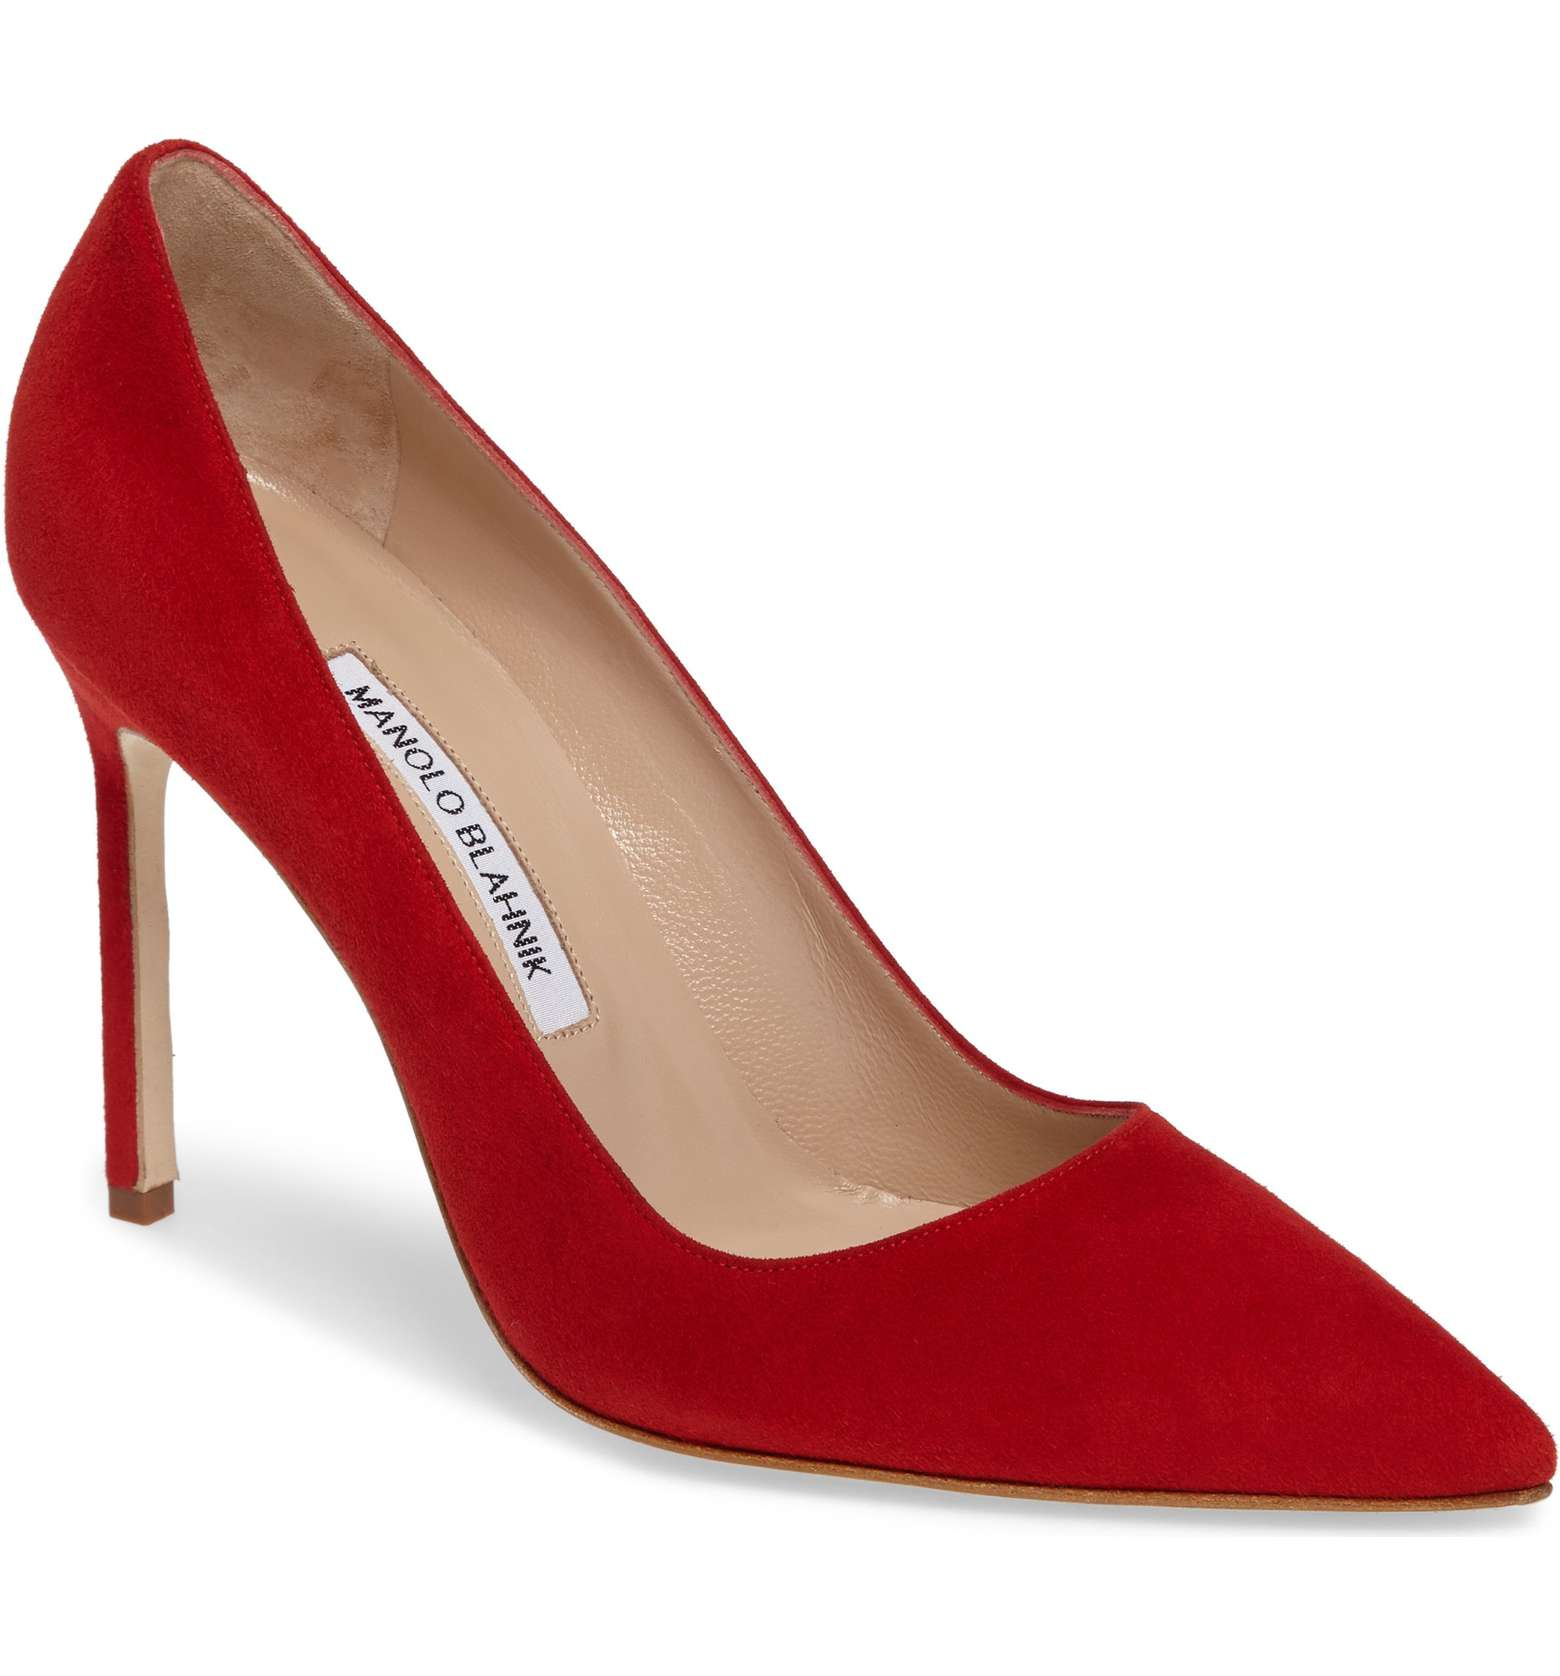 Manolo Blahnik BB Pumps in Red